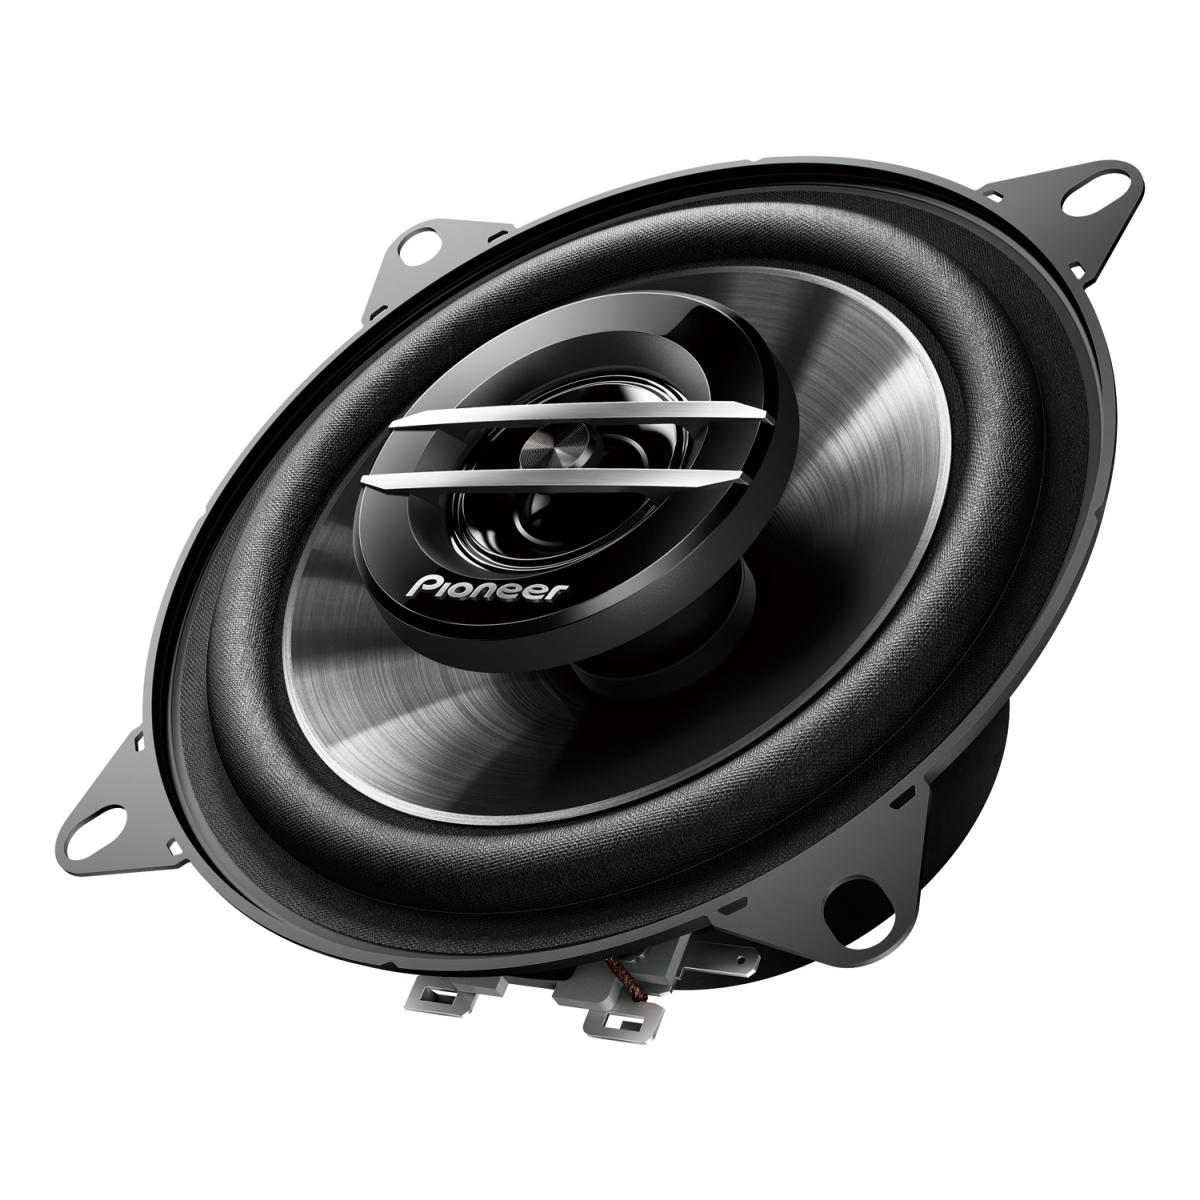 Car Speakers Pioneer TS-G1020F 3